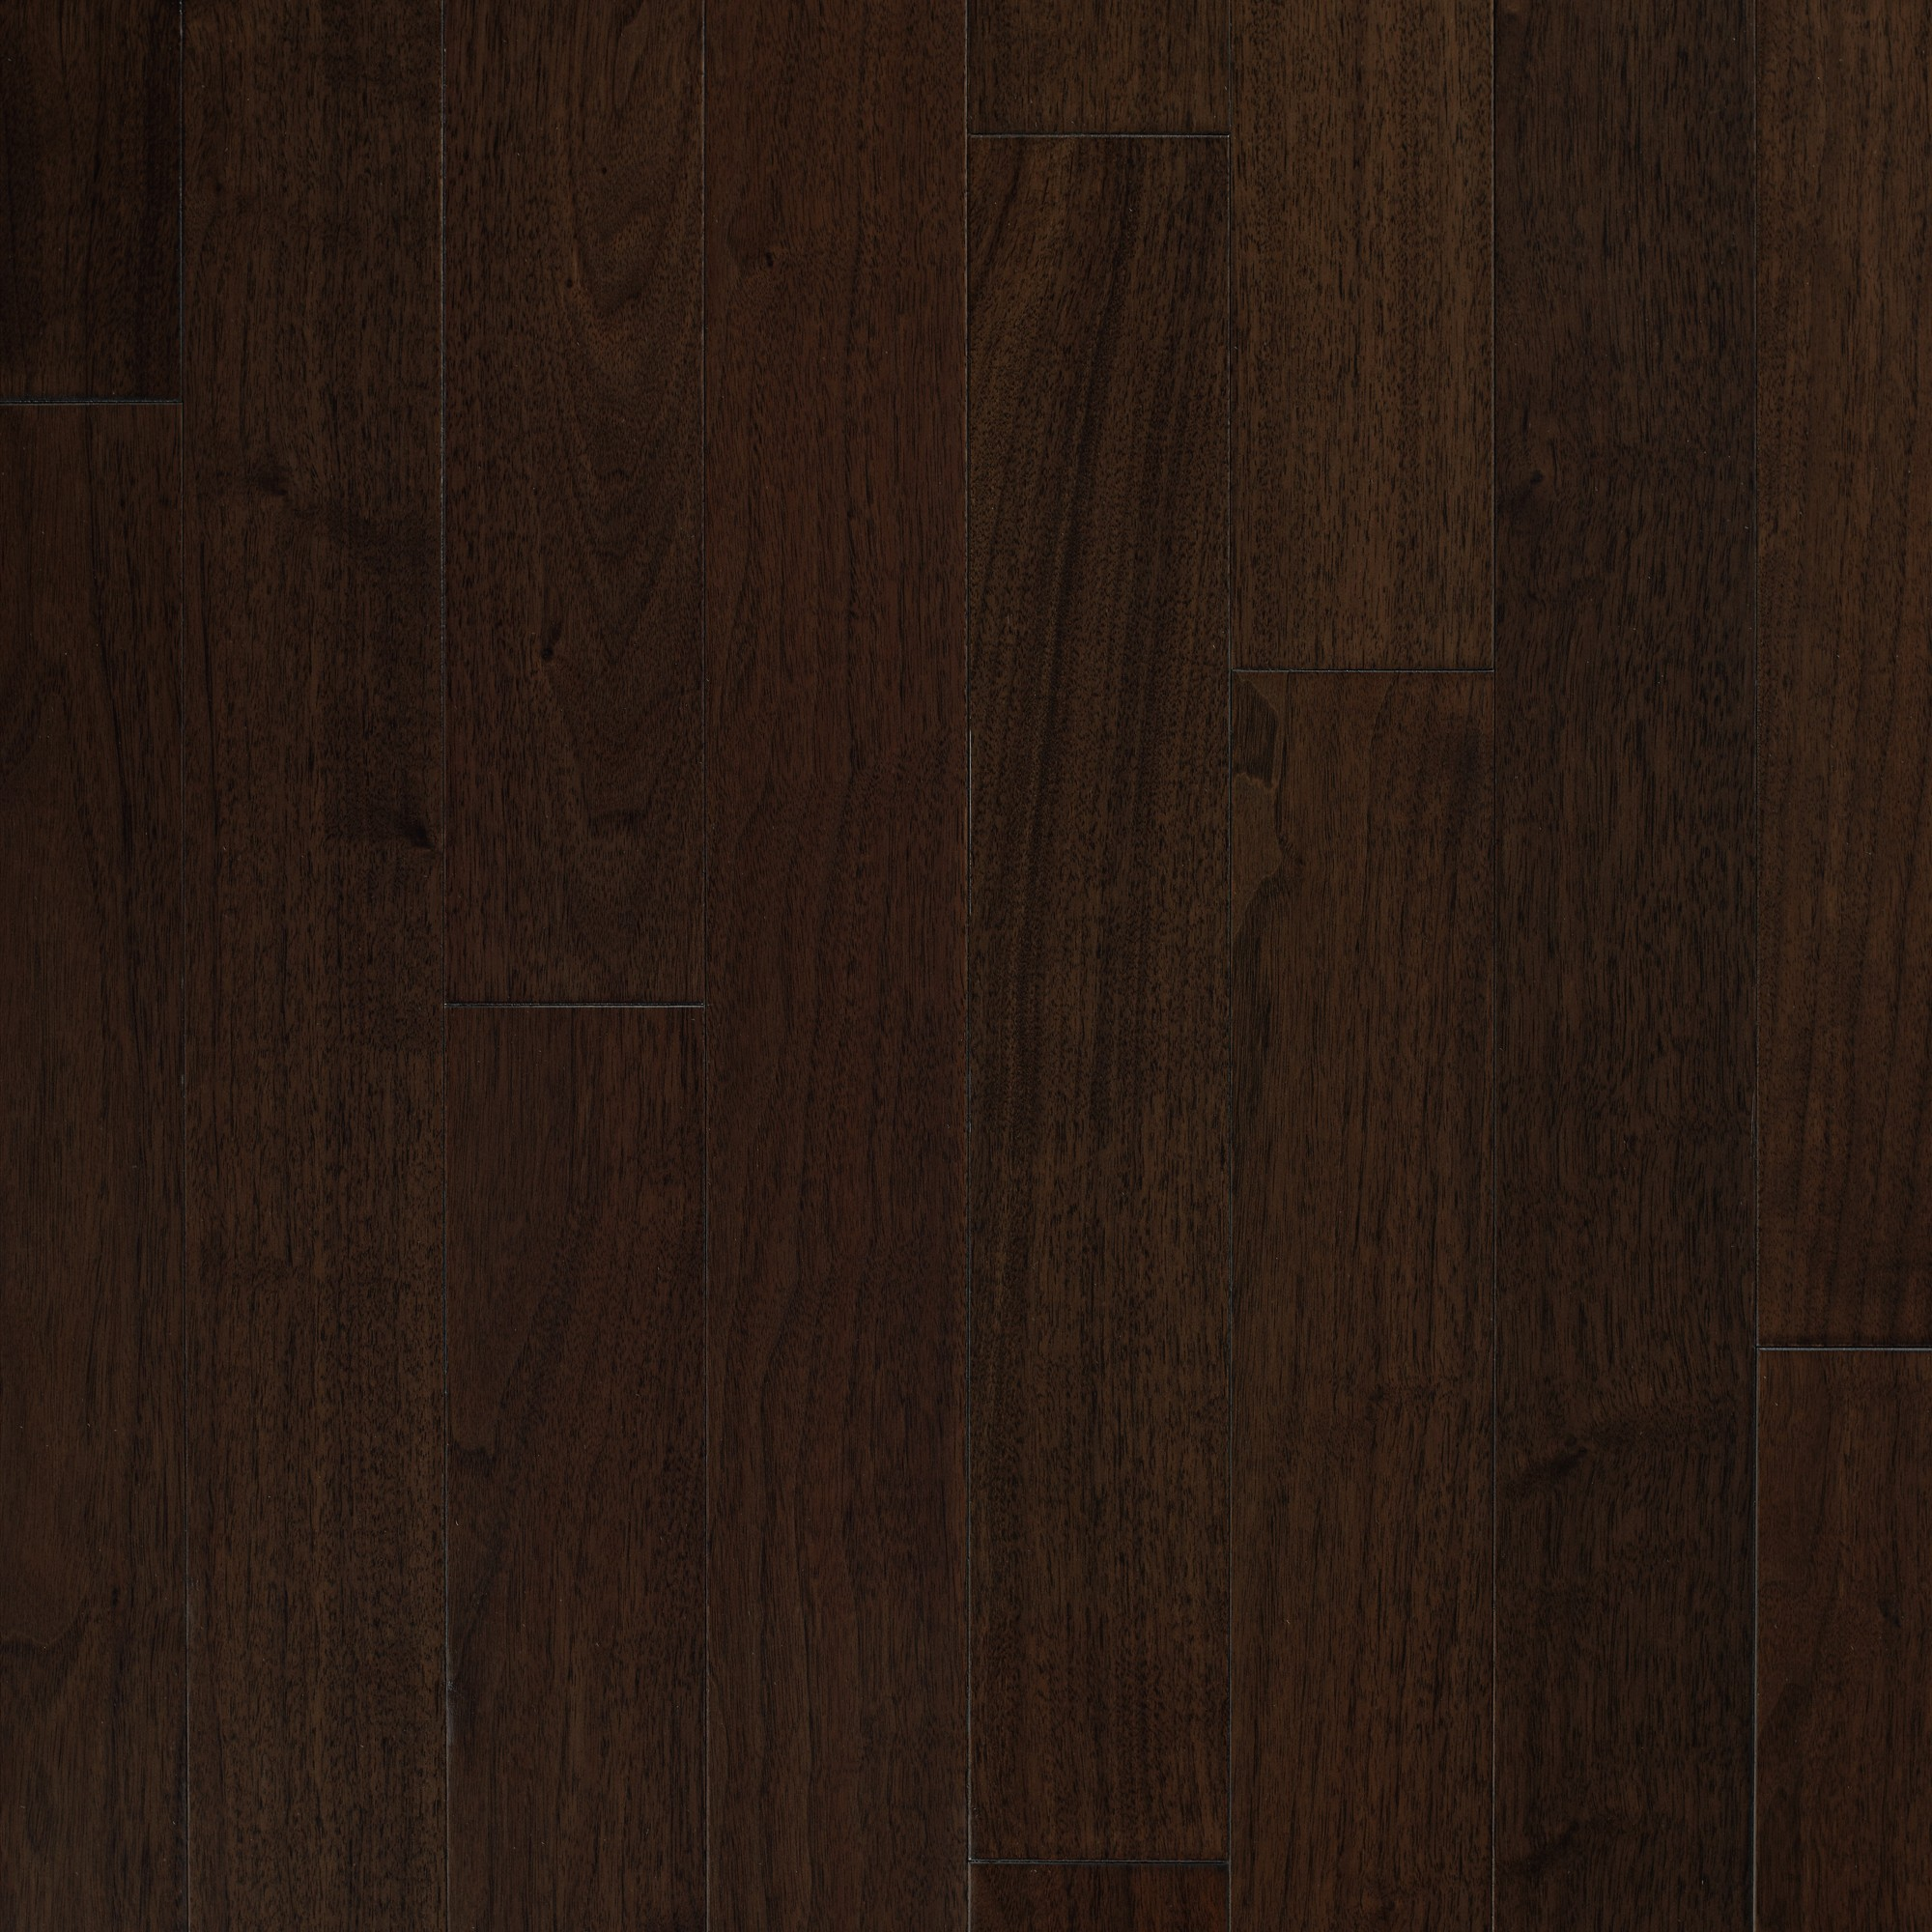 Smooth Black Walnut Medieval Vintage Hardwood Flooring